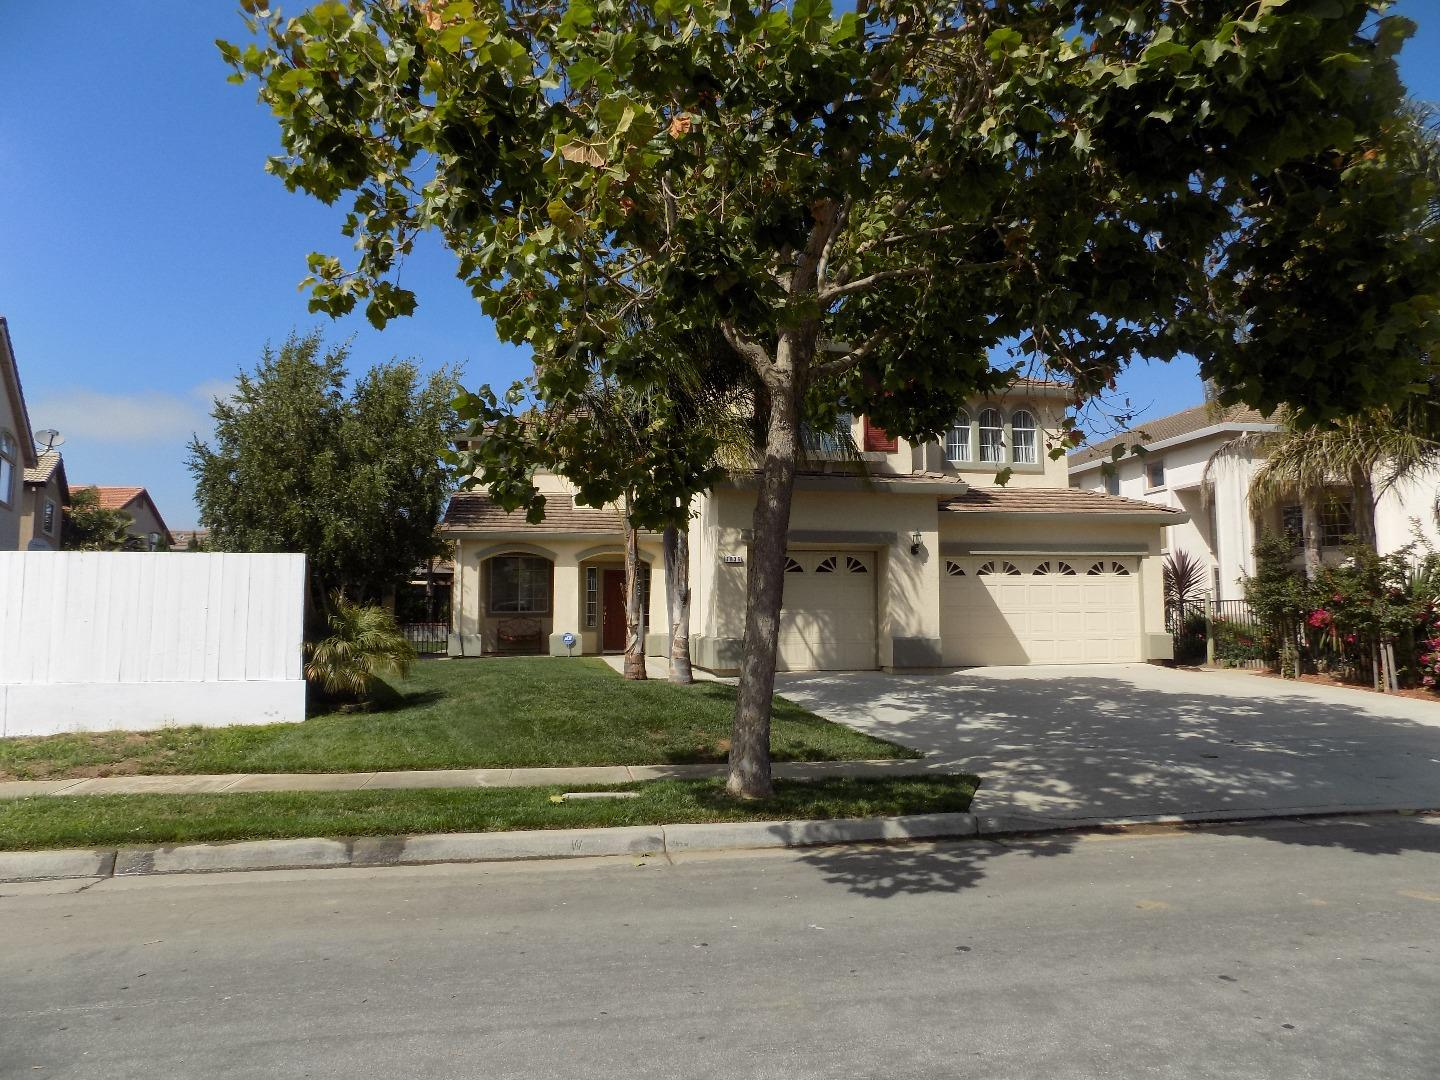 Single Family Home for Sale at 1836 London Way Salinas, California 93906 United States